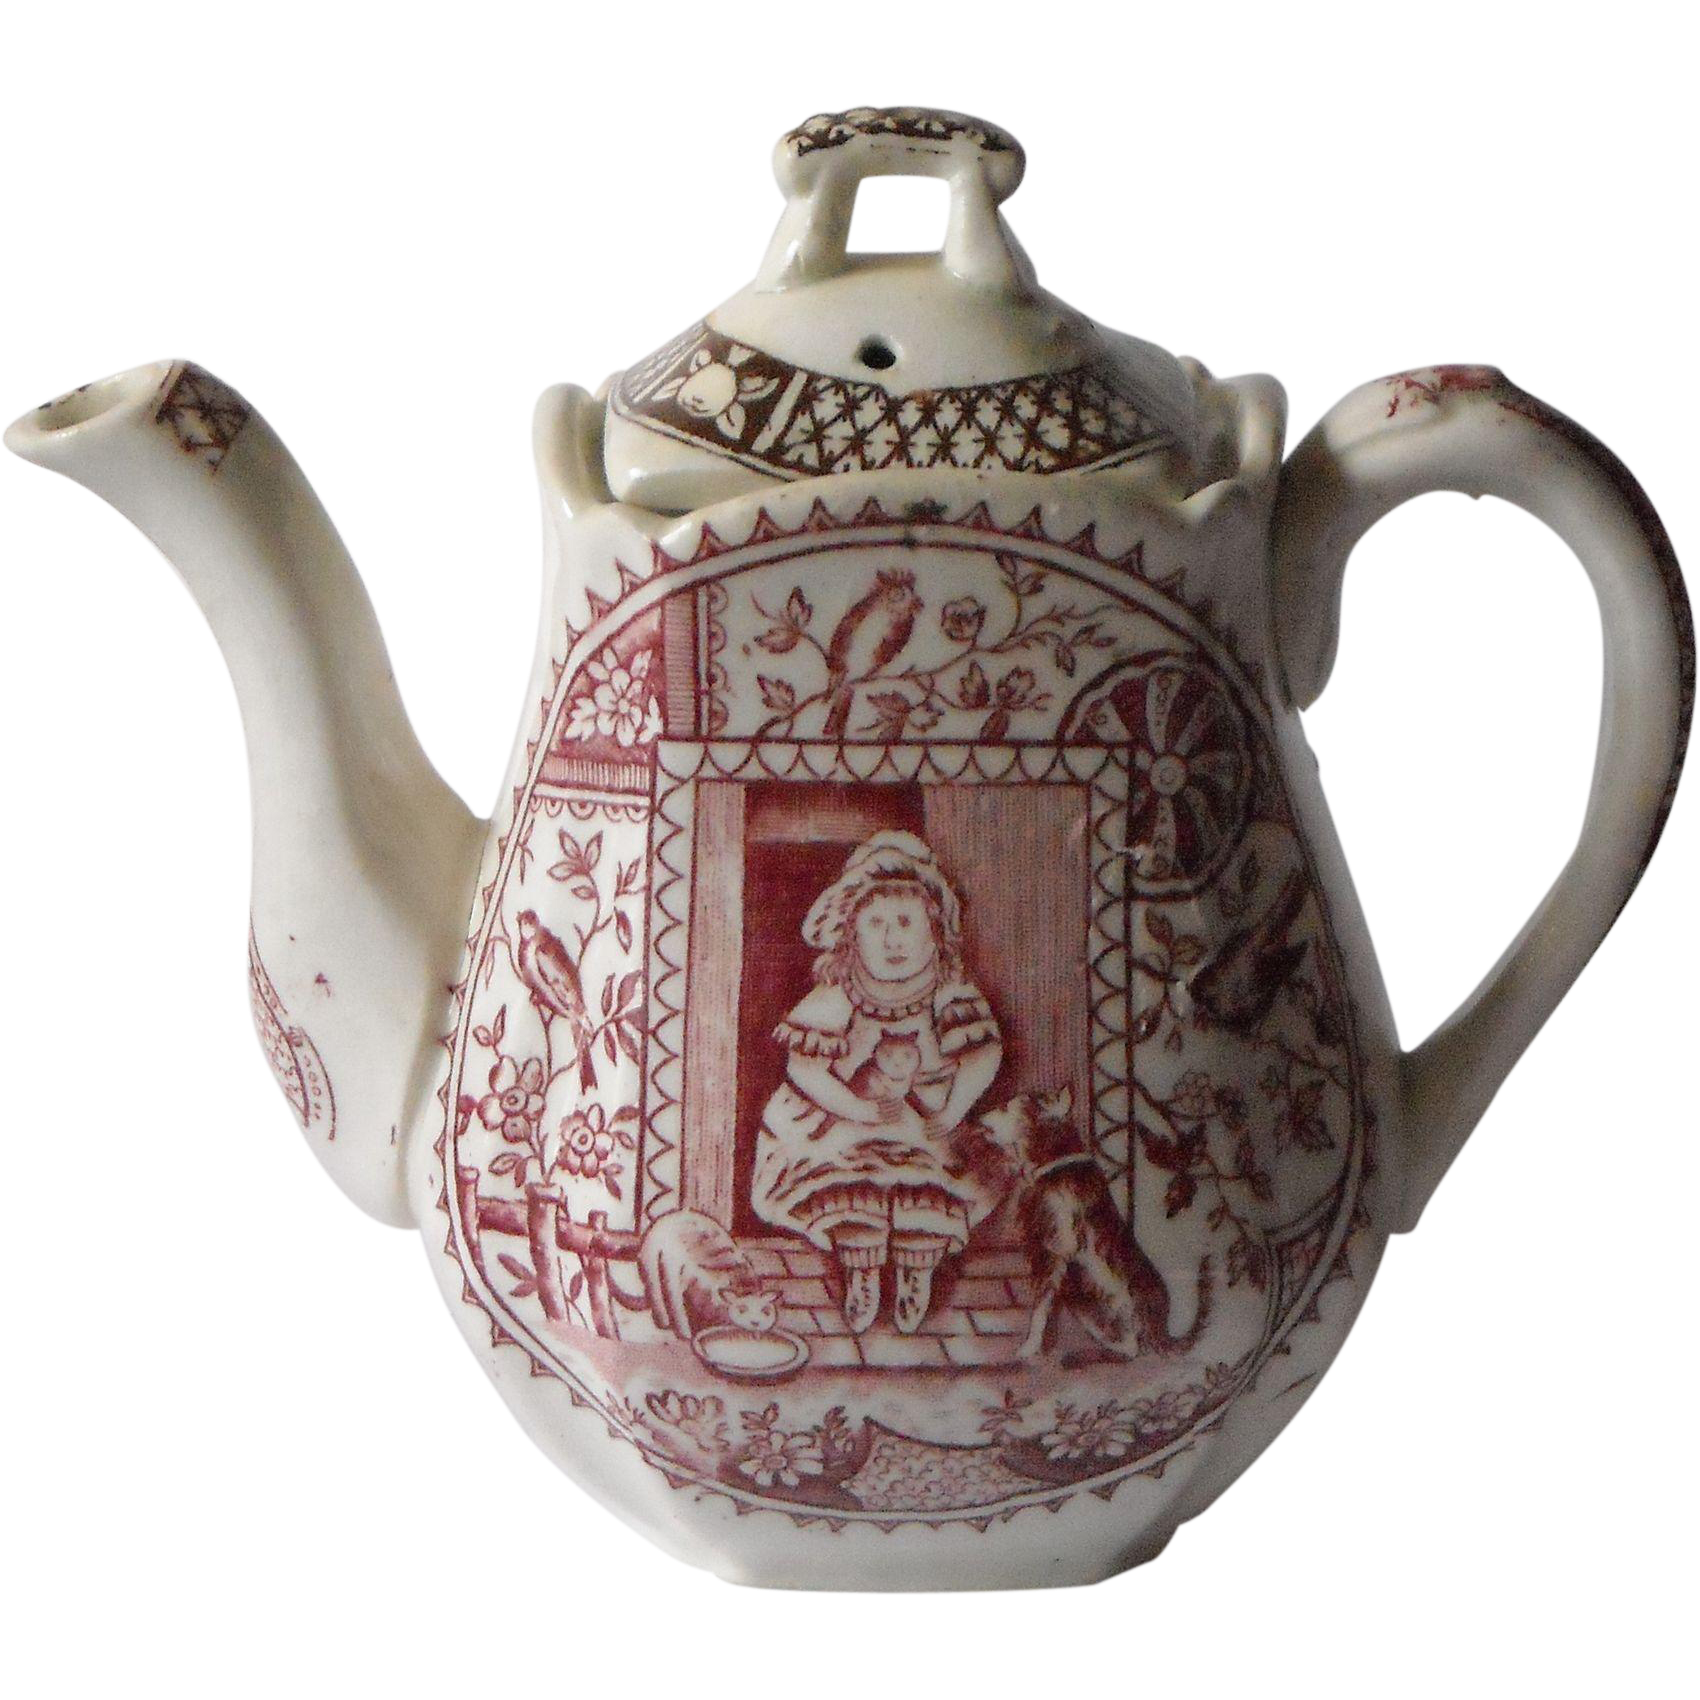 Child's Transferware Teapot